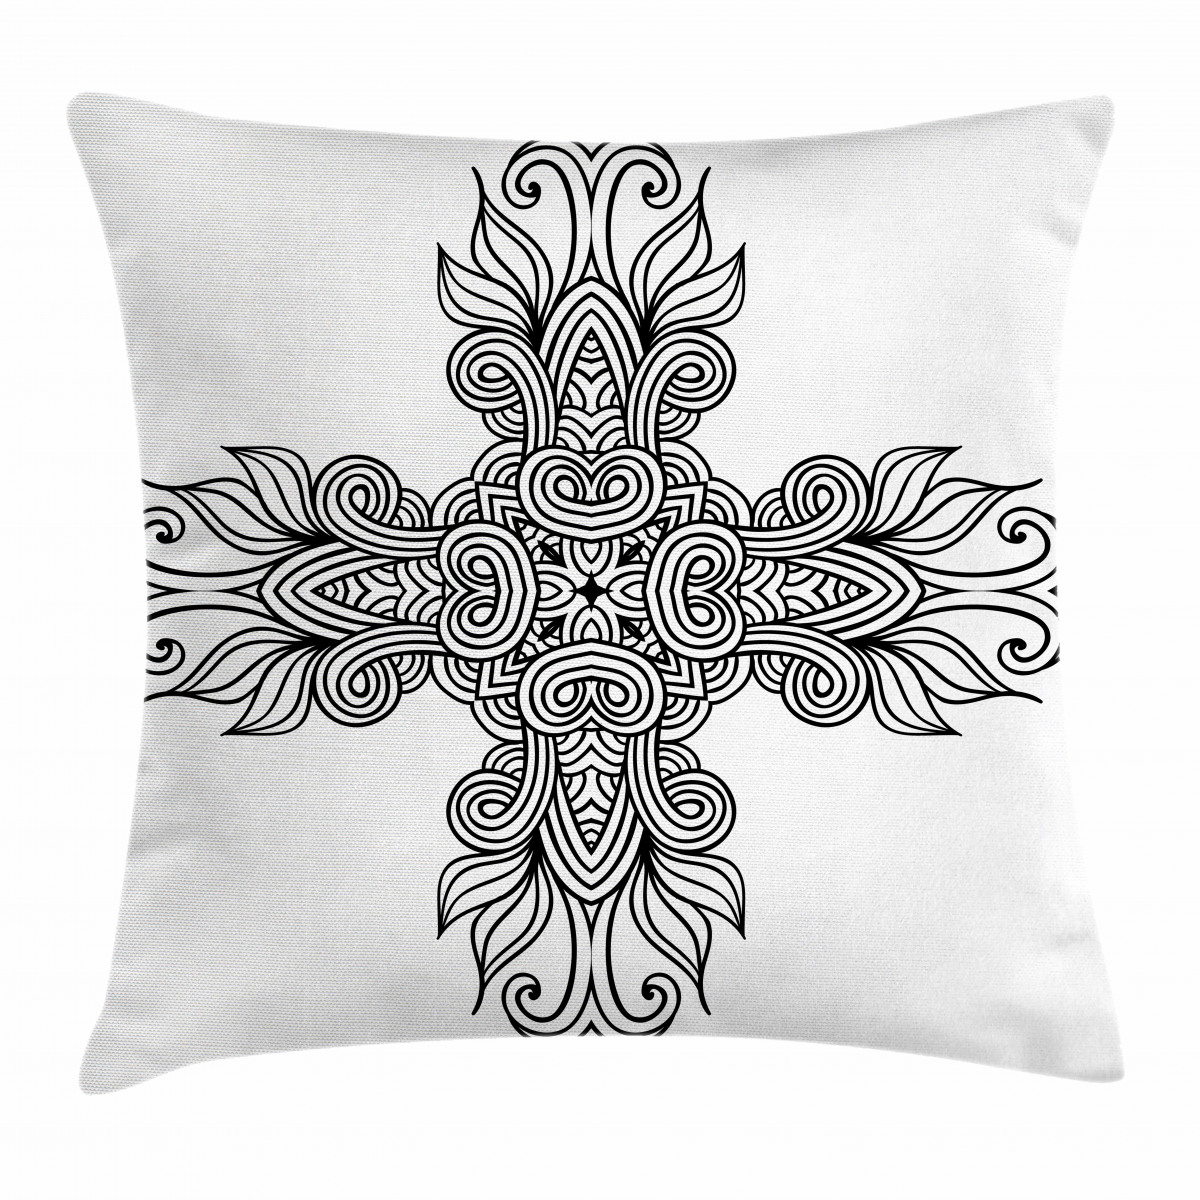 Royal Old Celtic Knot Pillow Cover